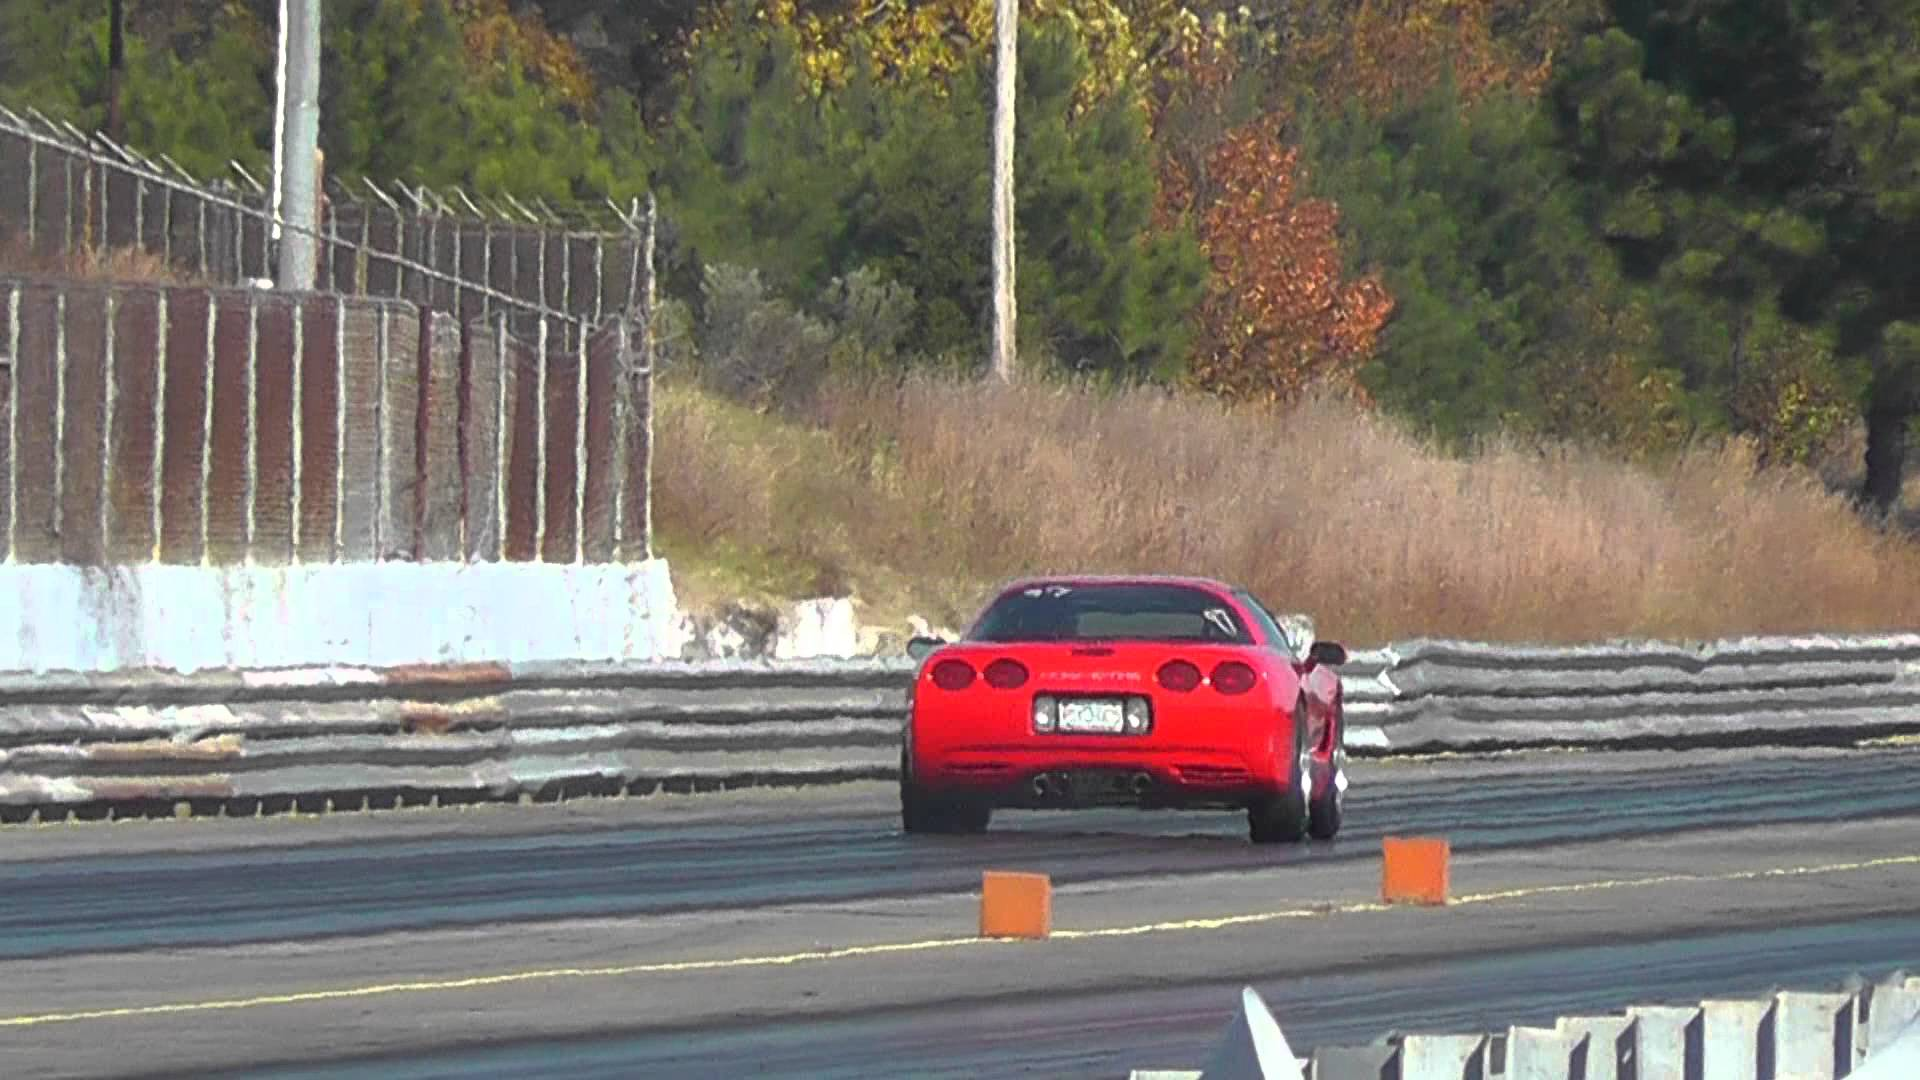 C5 Corvette Run on the Dragstrip